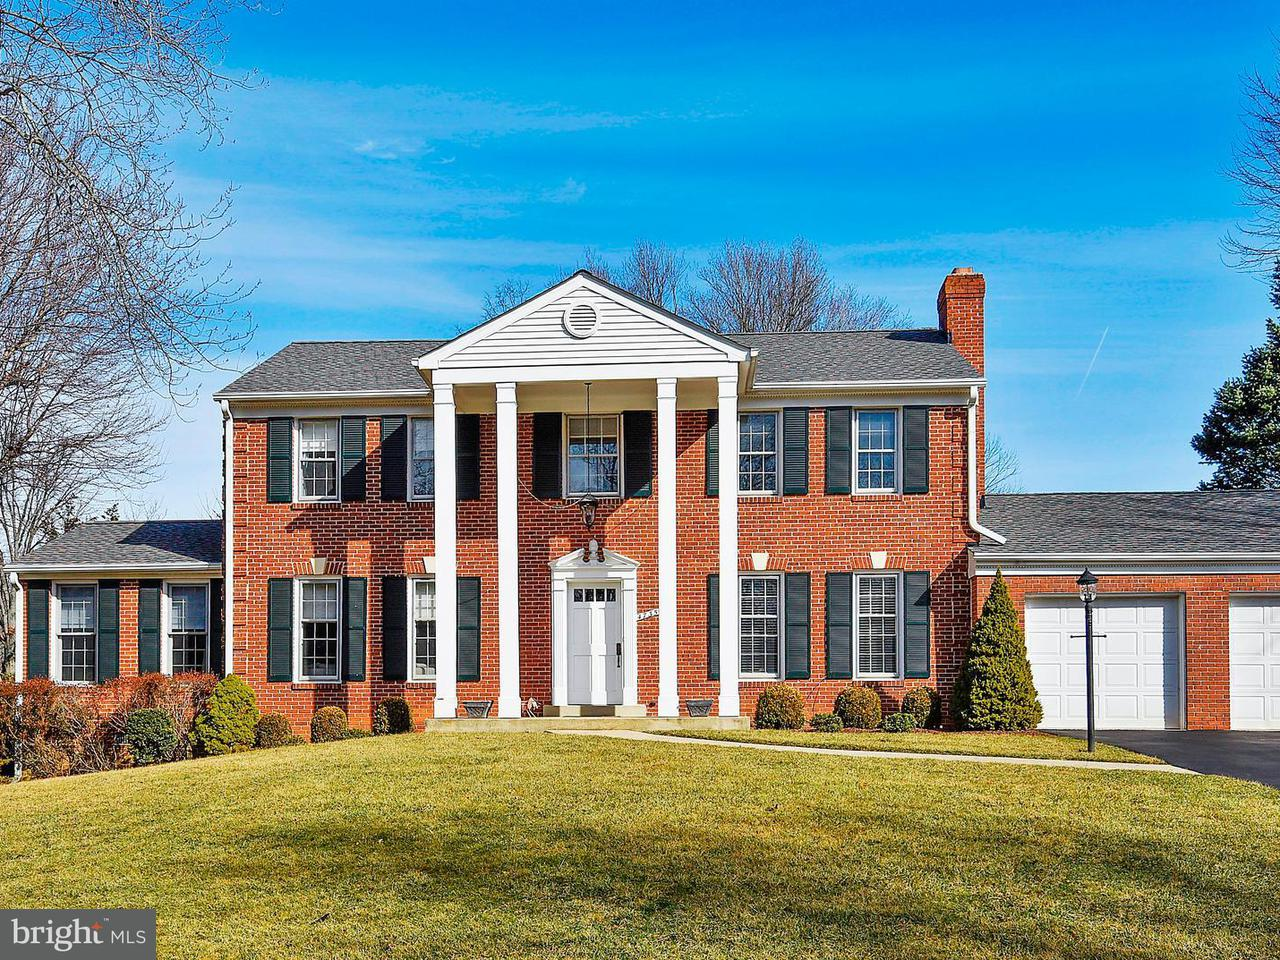 Single Family Home for Sale at 4735 Powder House Drive 4735 Powder House Drive Rockville, Maryland 20853 United States